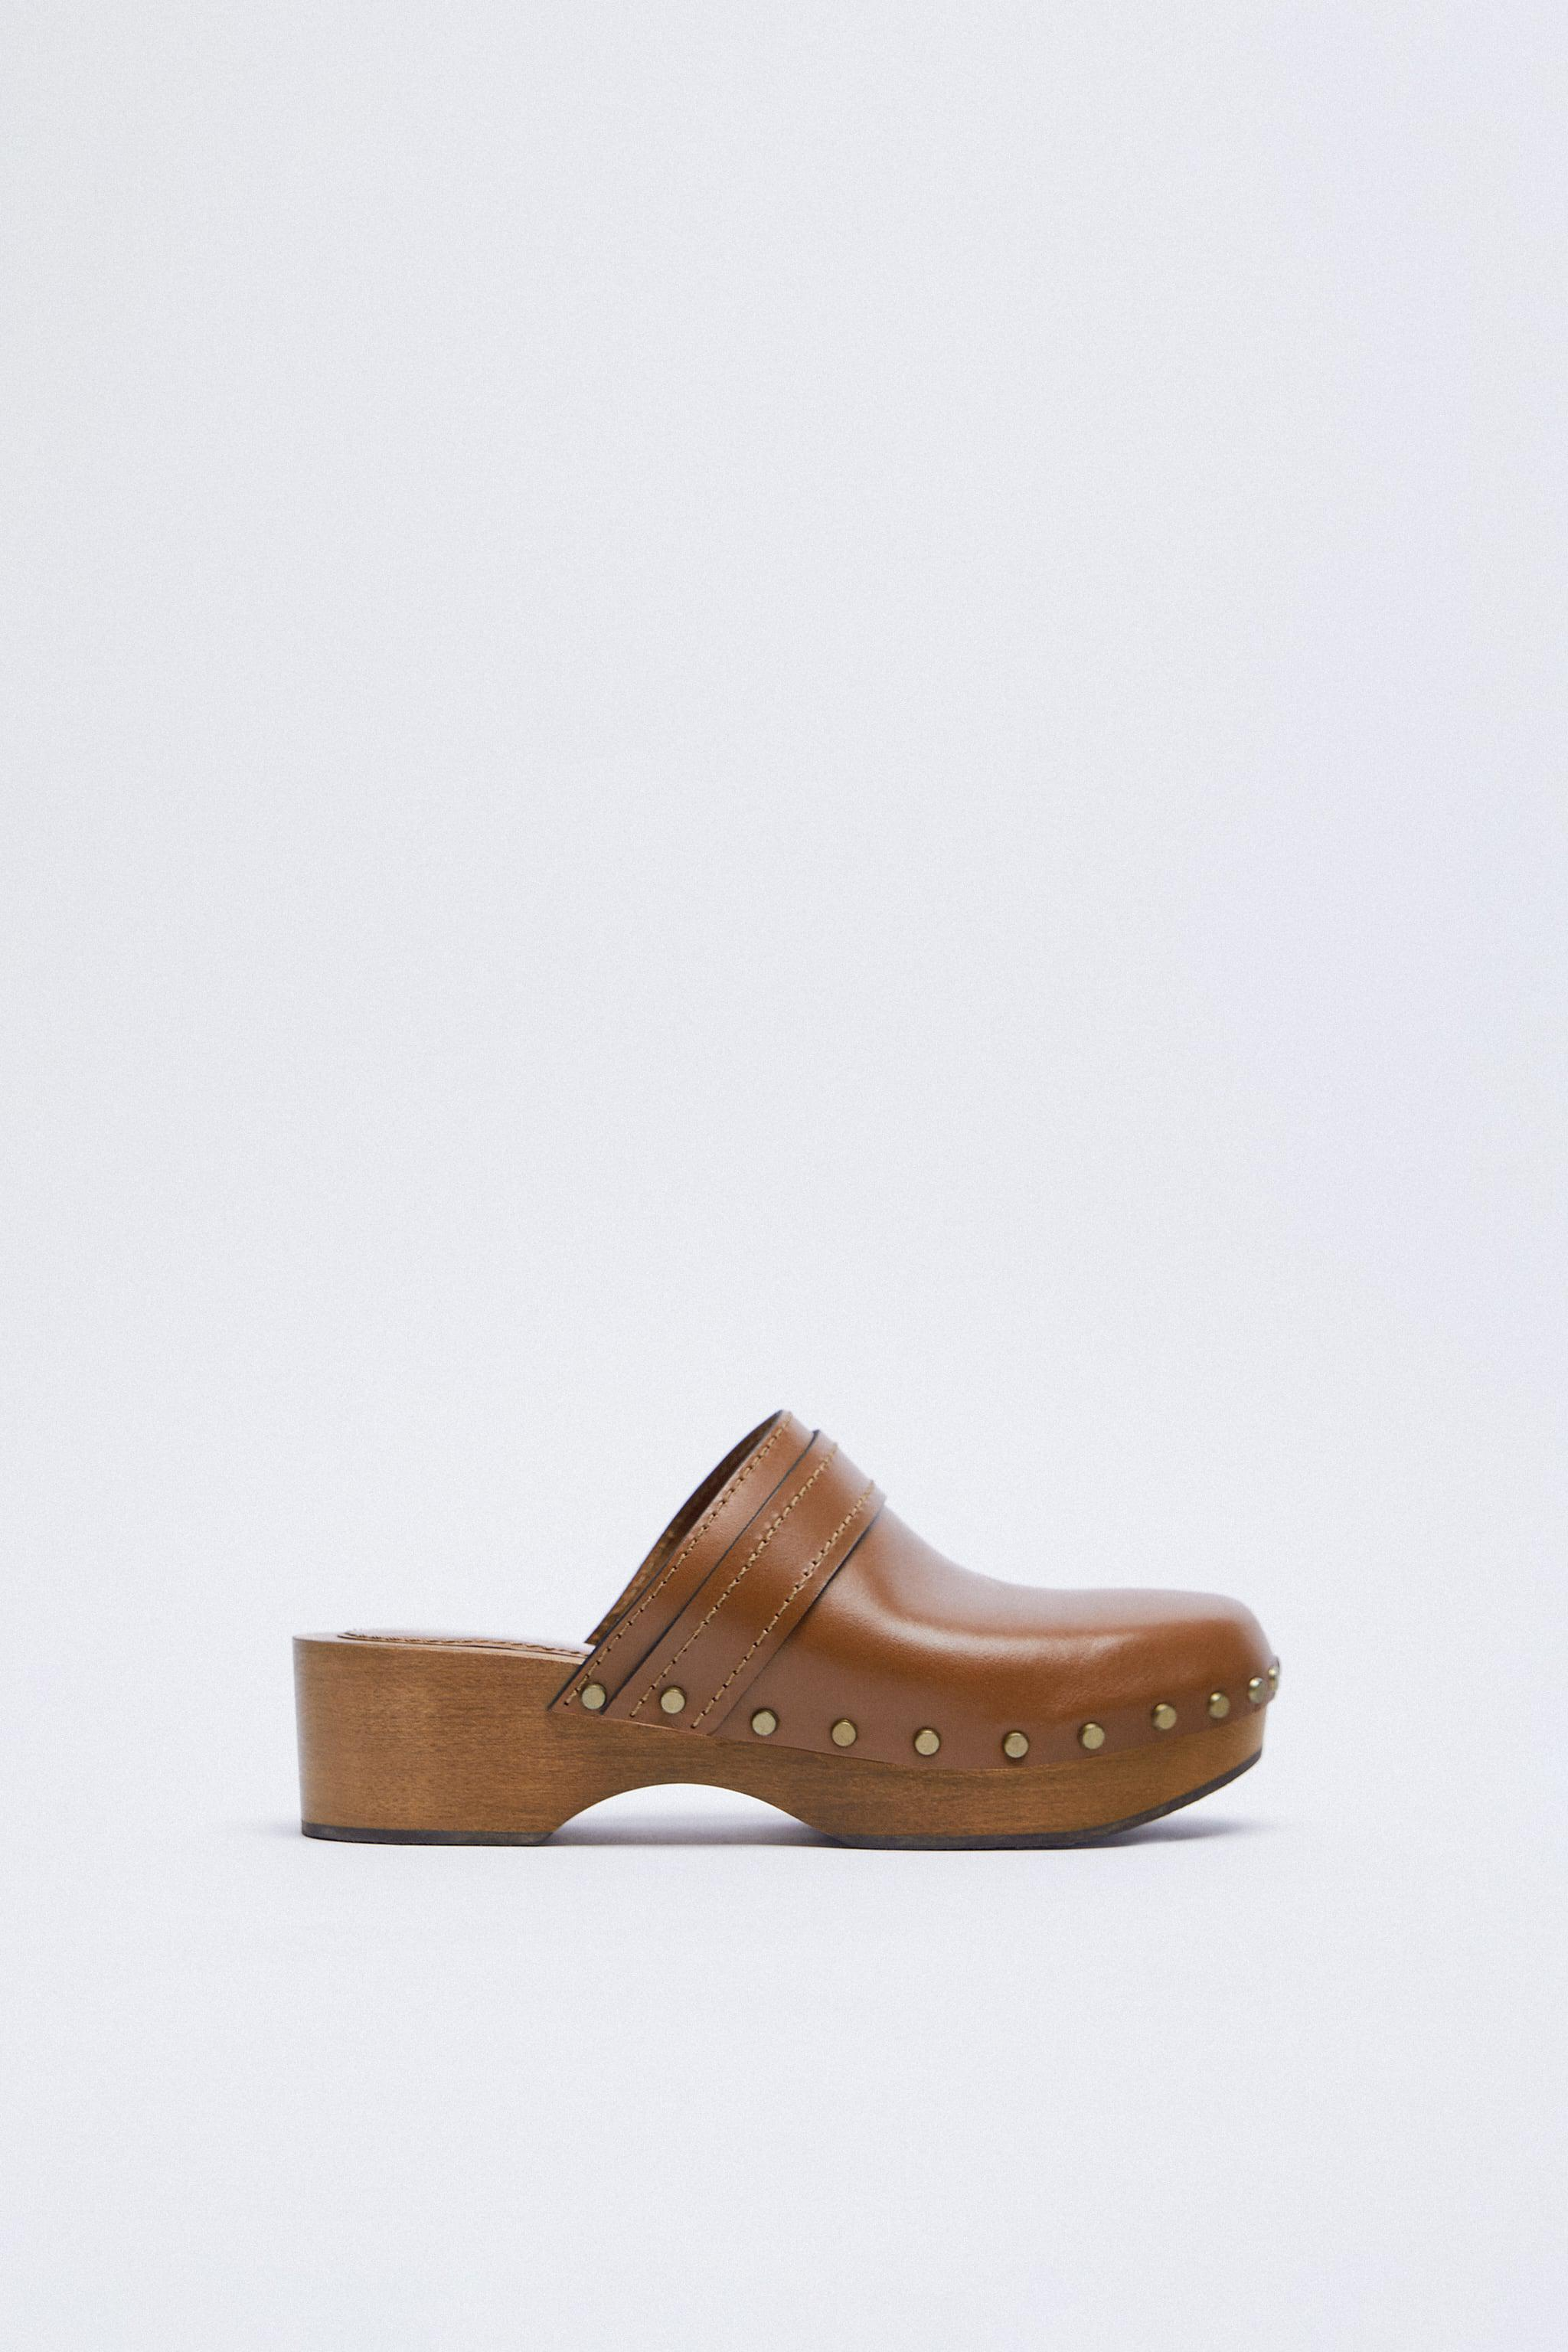 WOOD AND LEATHER CLOGS